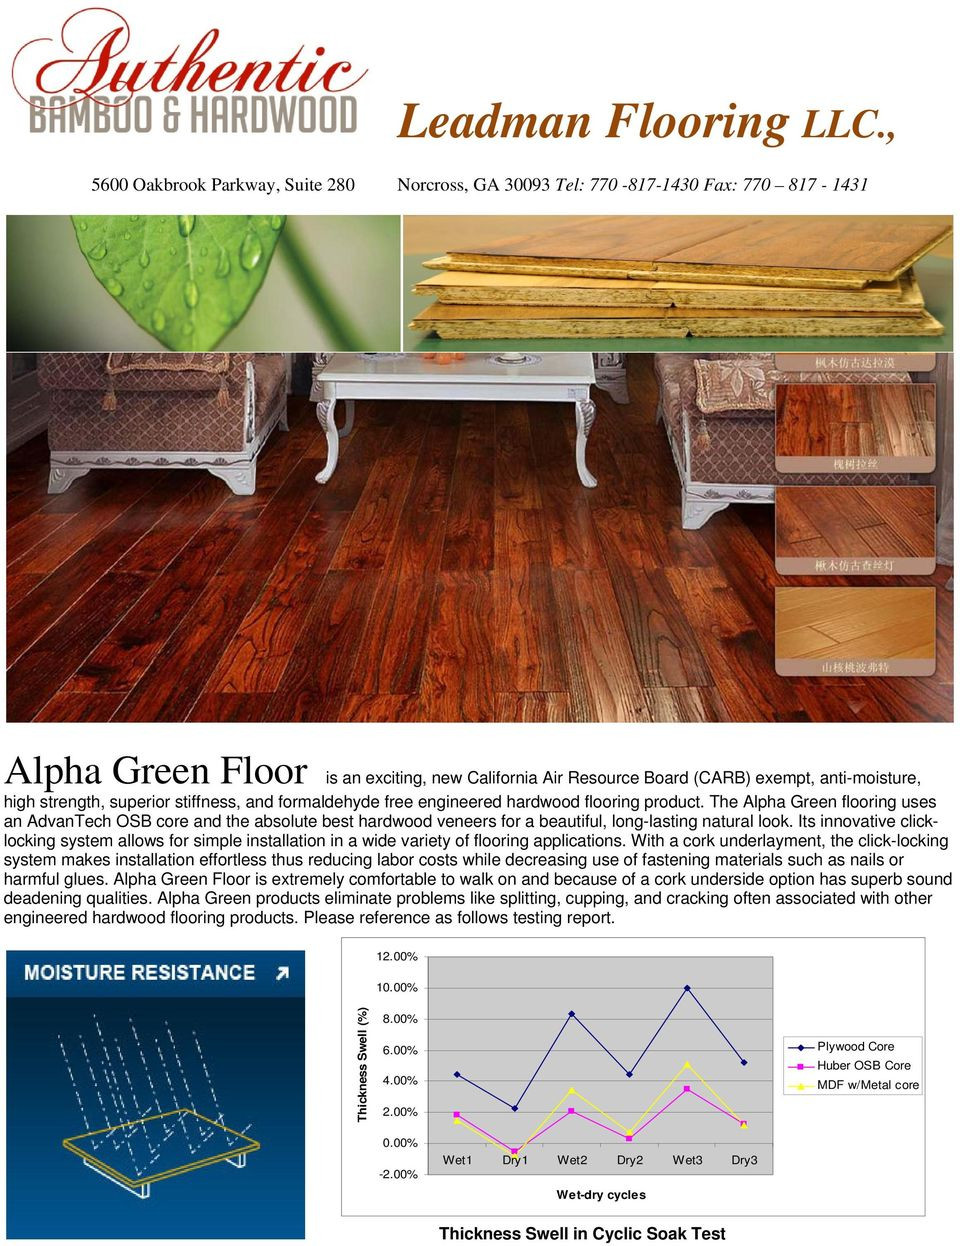 how to install engineered hardwood floors yourself of leadman flooring llc pdf intended for strength superior stiffness and formaldehyde free engineered hardwood flooring product